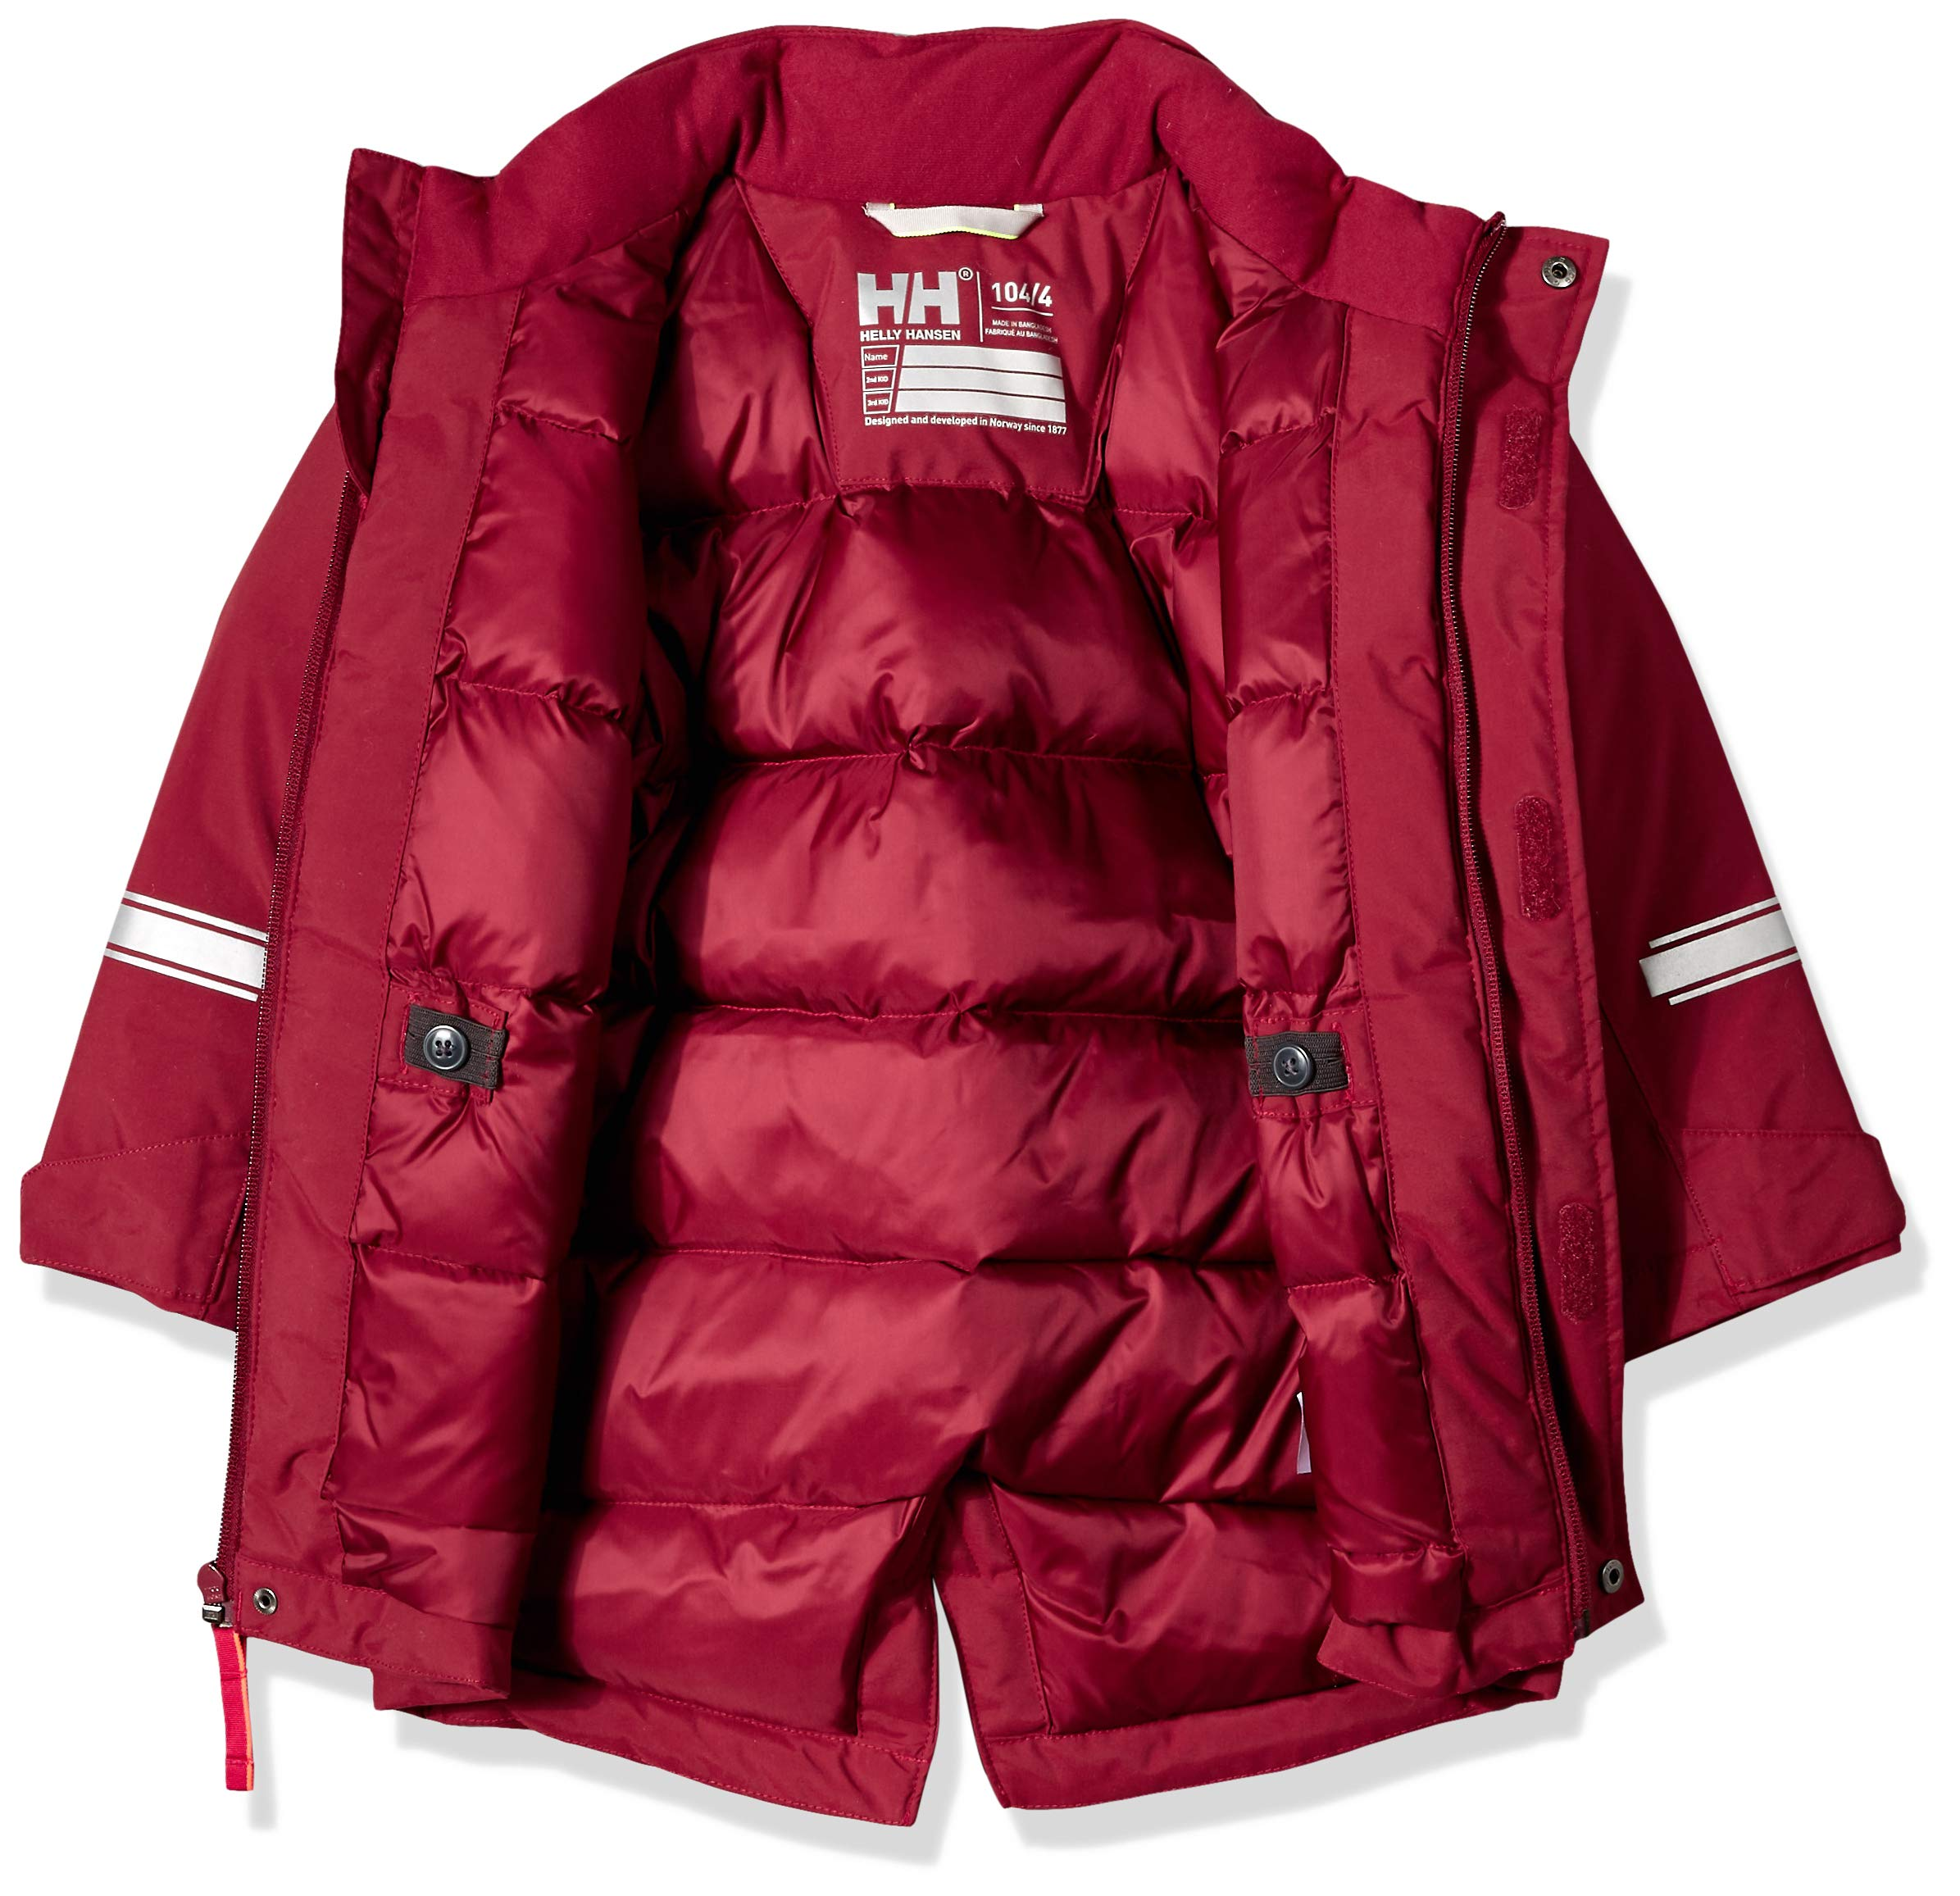 Helly Hansen K Isfjord Down Parka Jacket, Cabernet, Size 4 by Helly Hansen (Image #3)